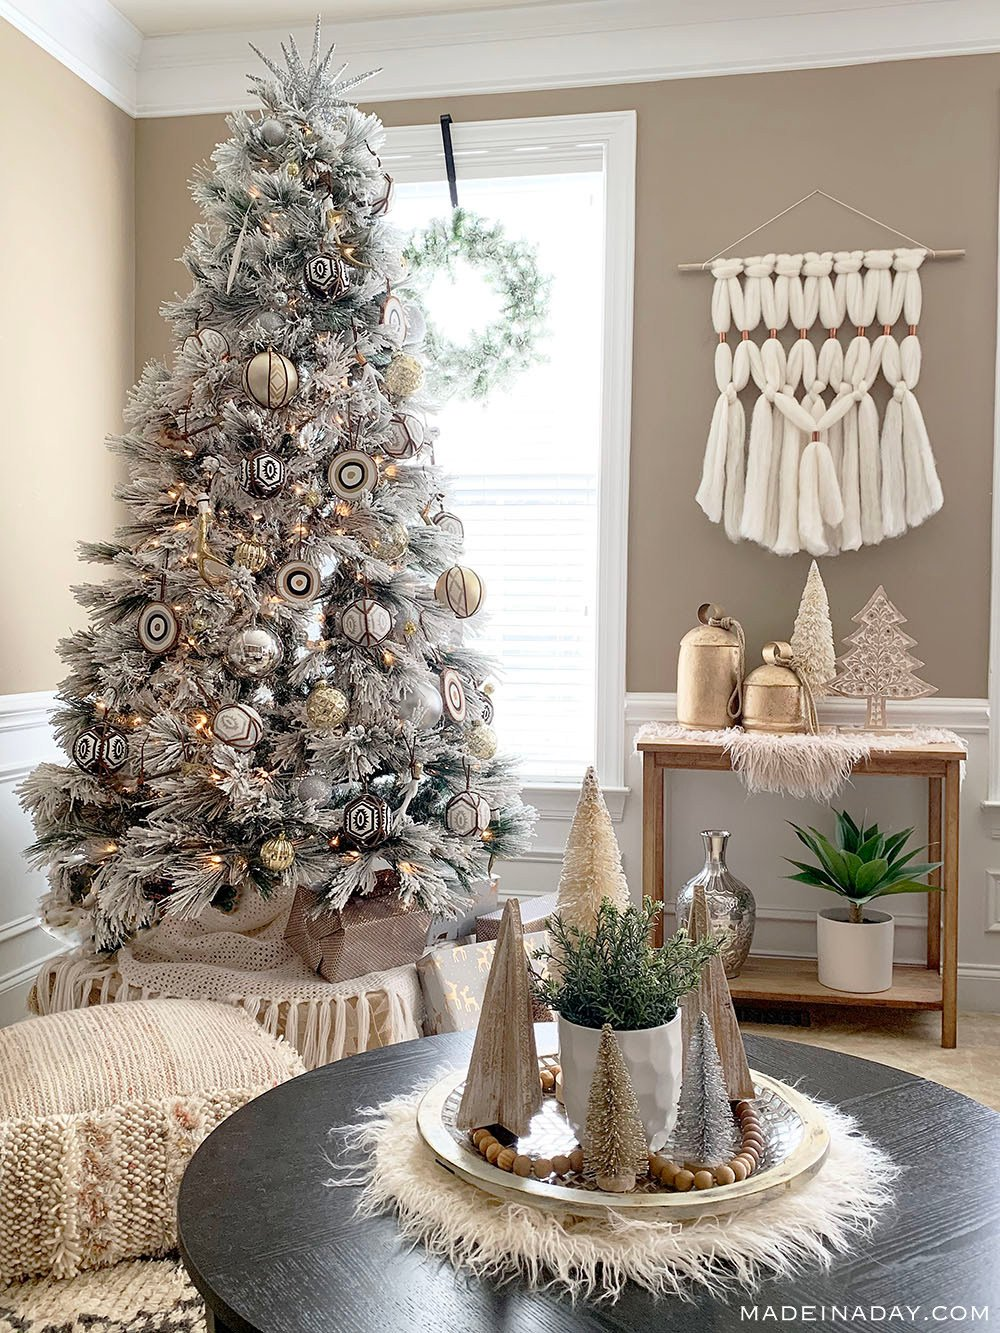 Rustic Bohemian Style Christmas Tree and Decor, boho flocked tree, global flocked tree